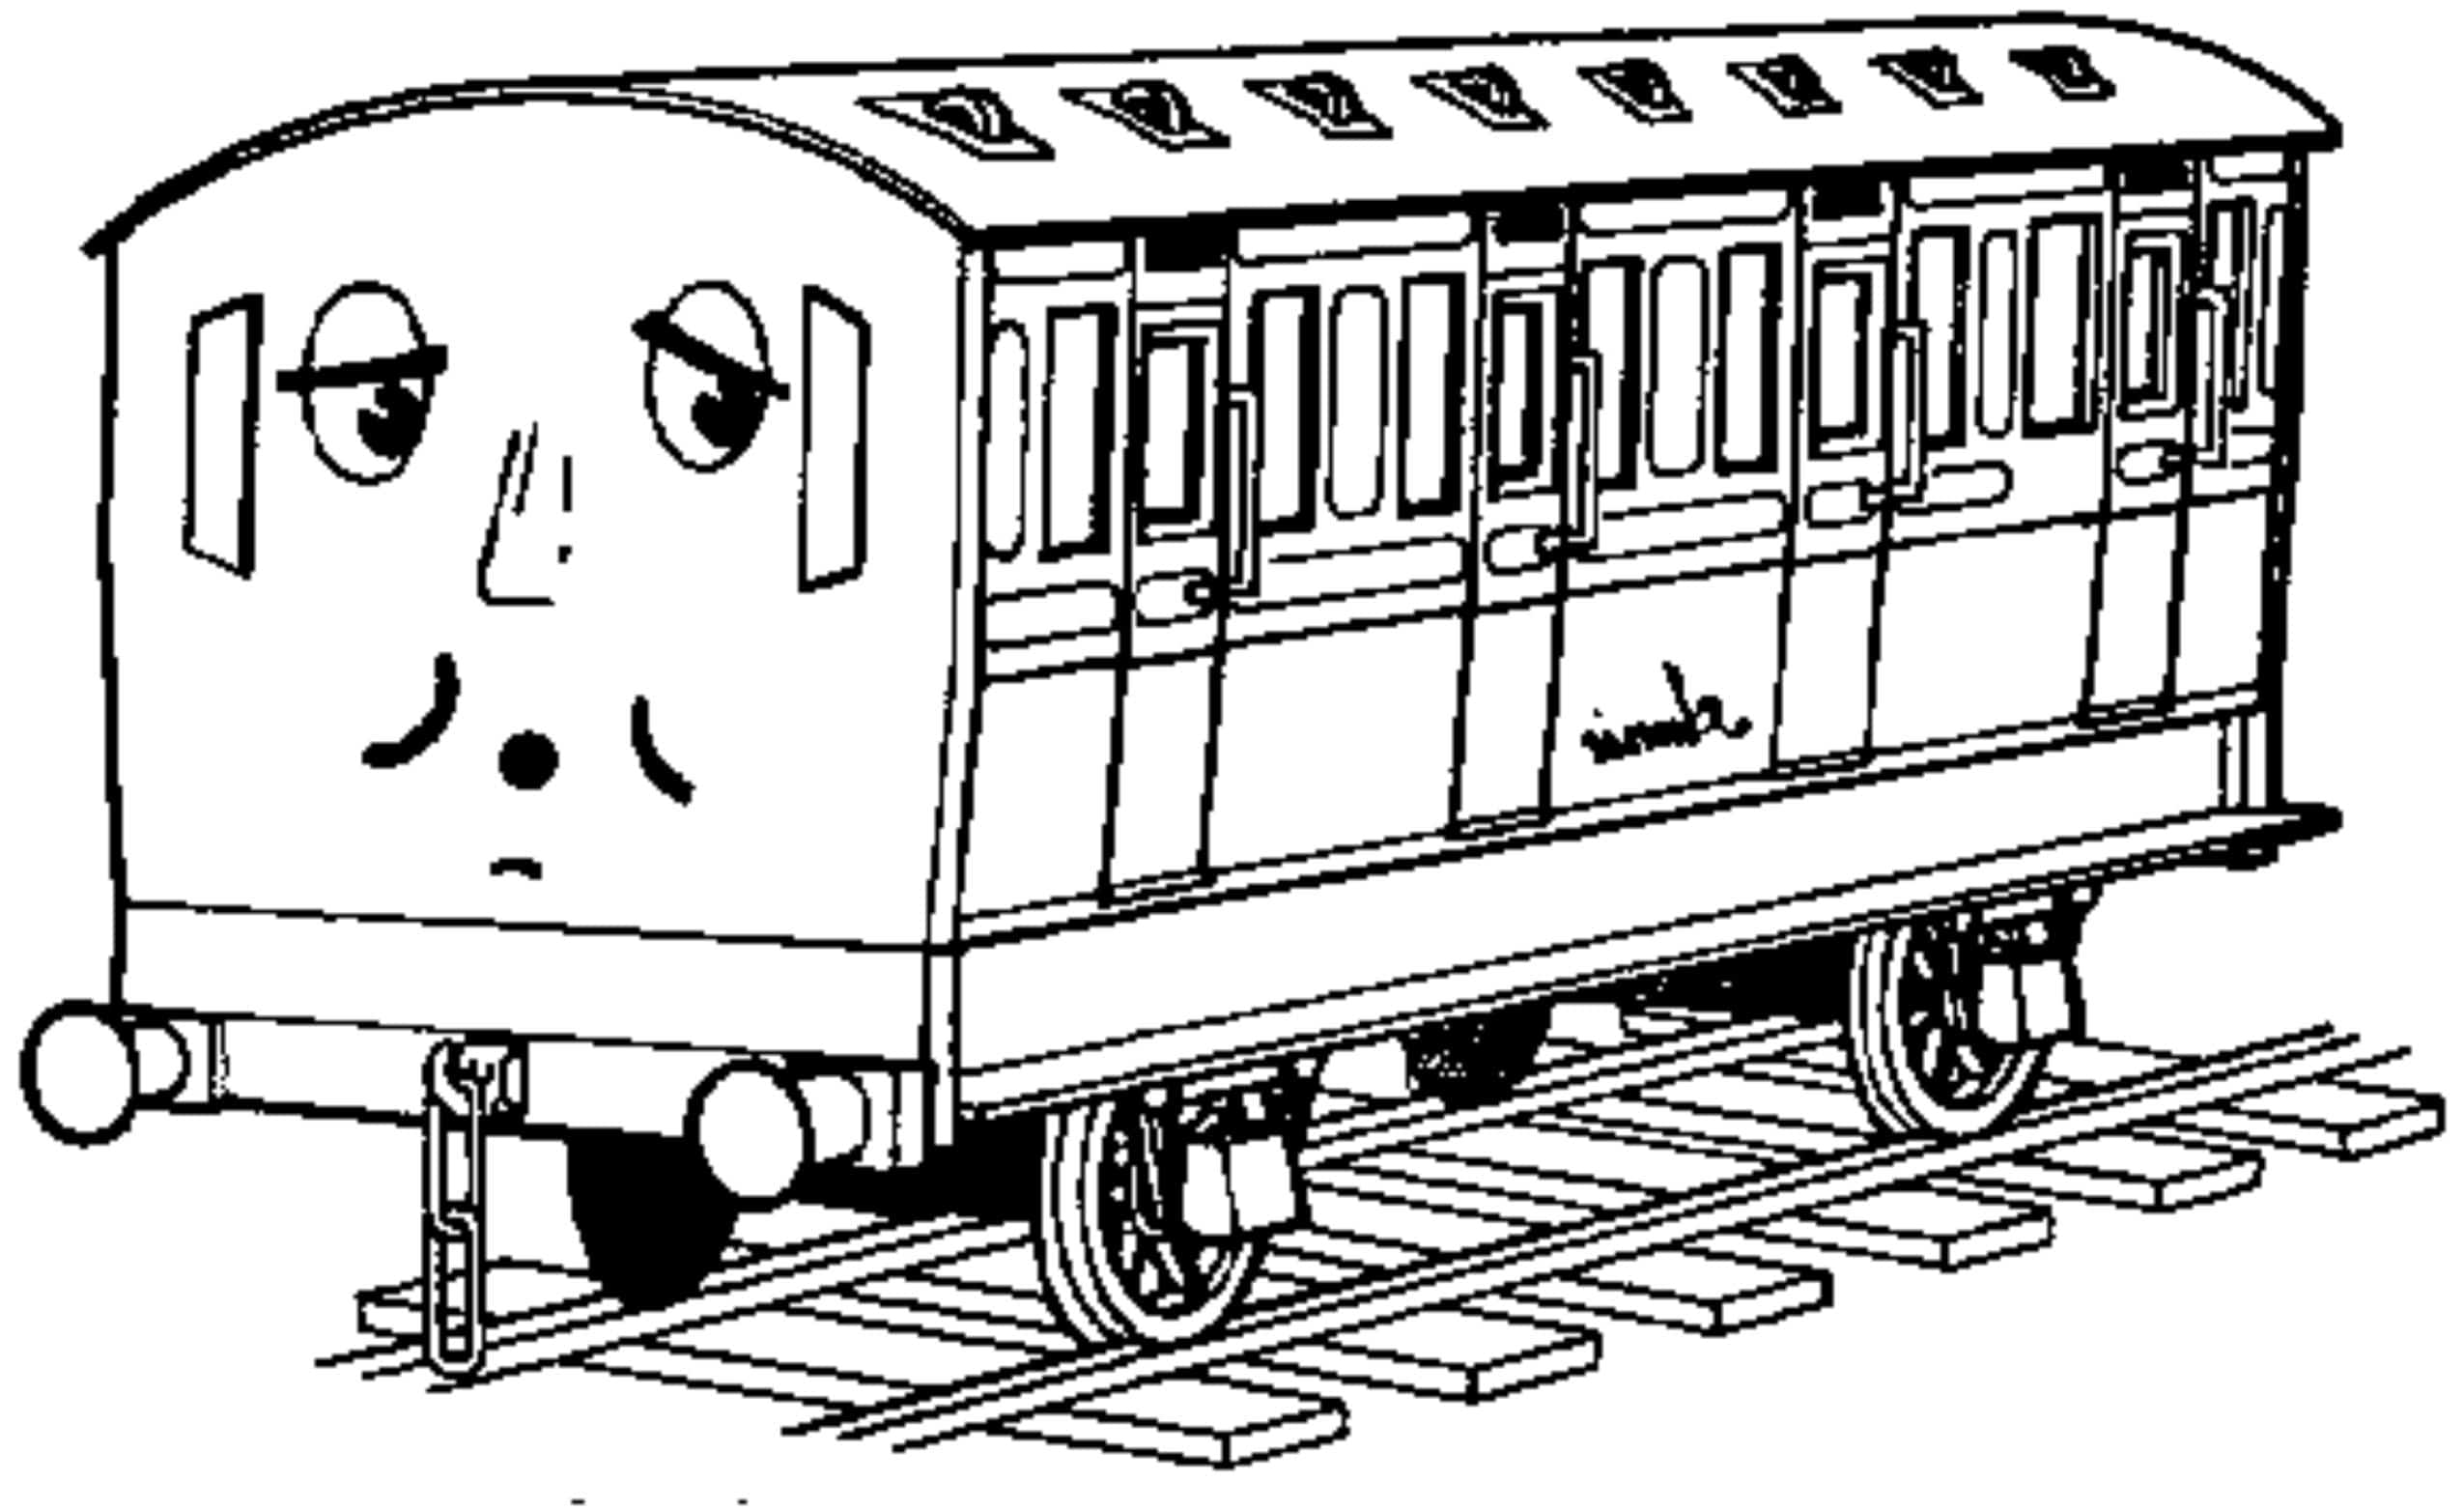 thomas and friends coloring sheets edward from thomas friends coloring page free coloring and sheets friends thomas